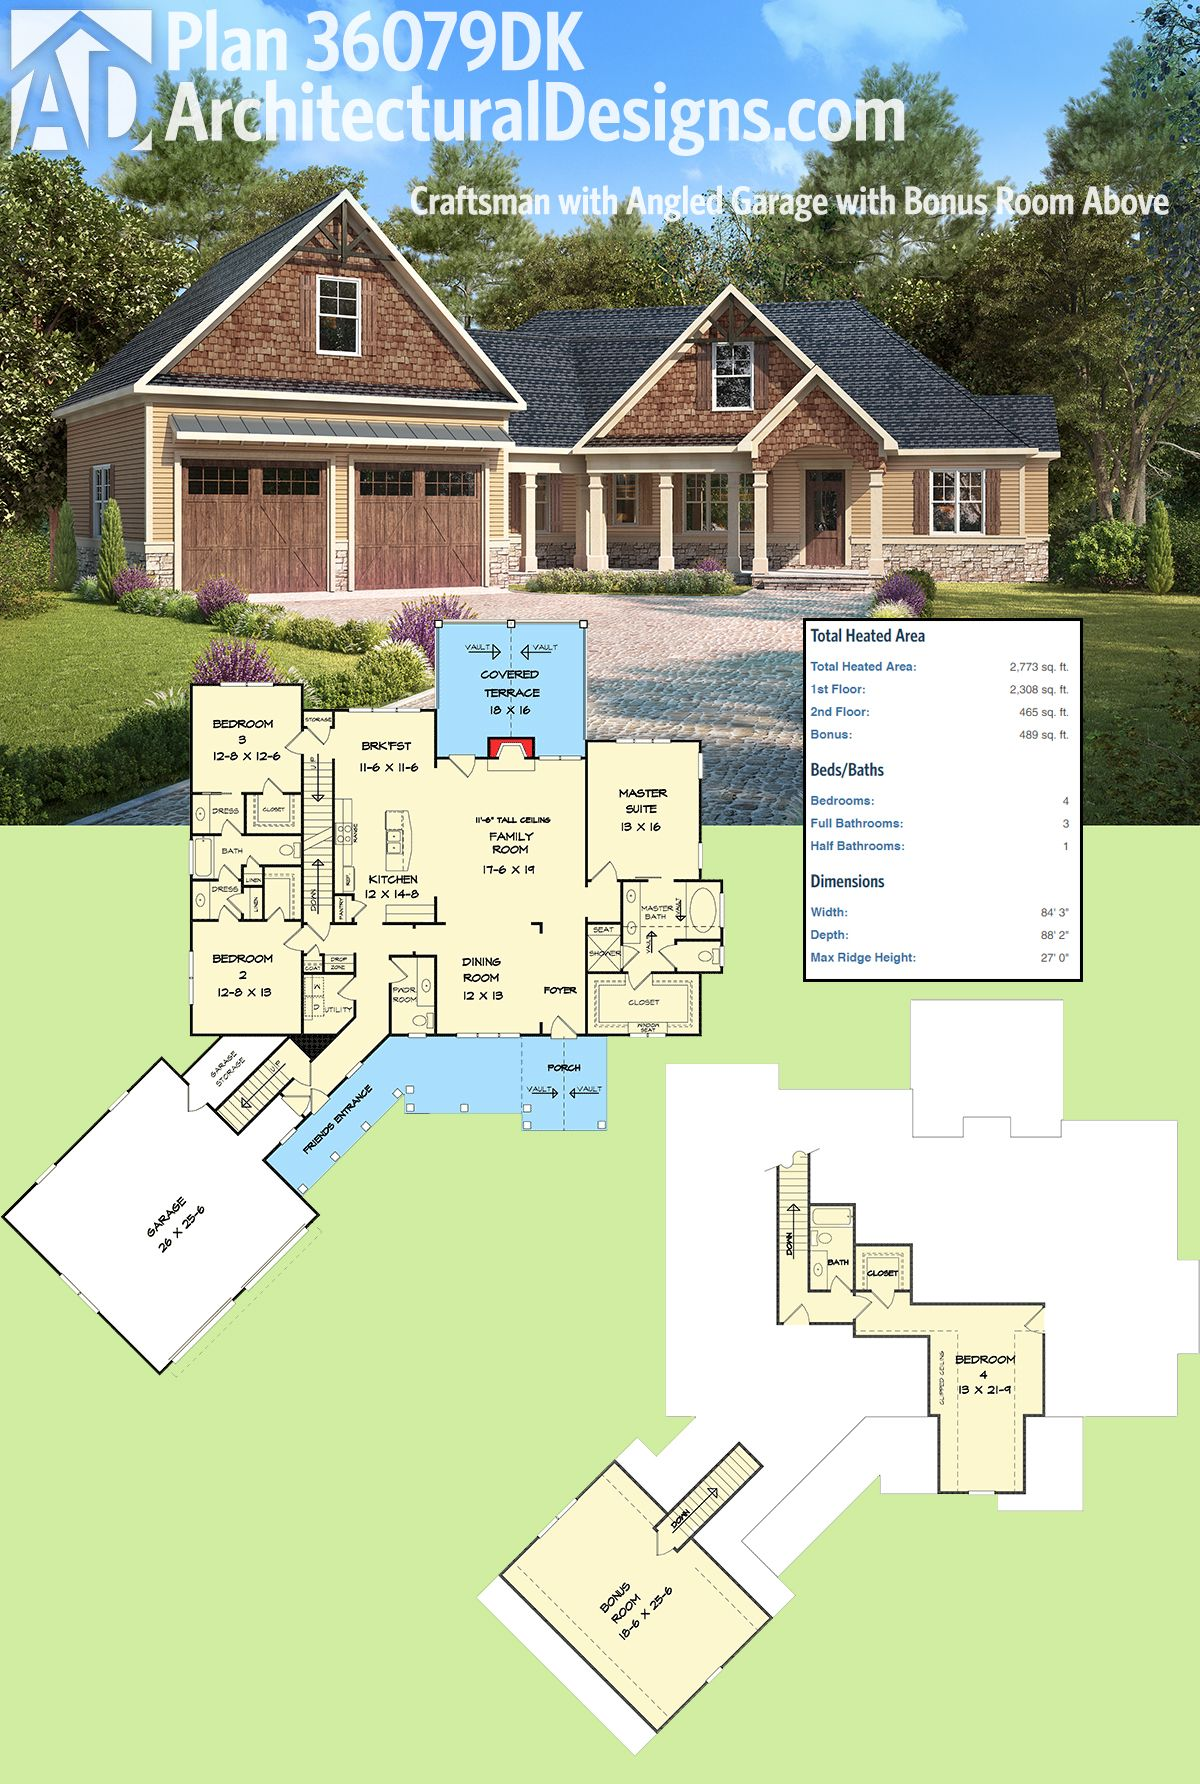 Introducing Architectural Designs Exclusive House Plan 36079DK